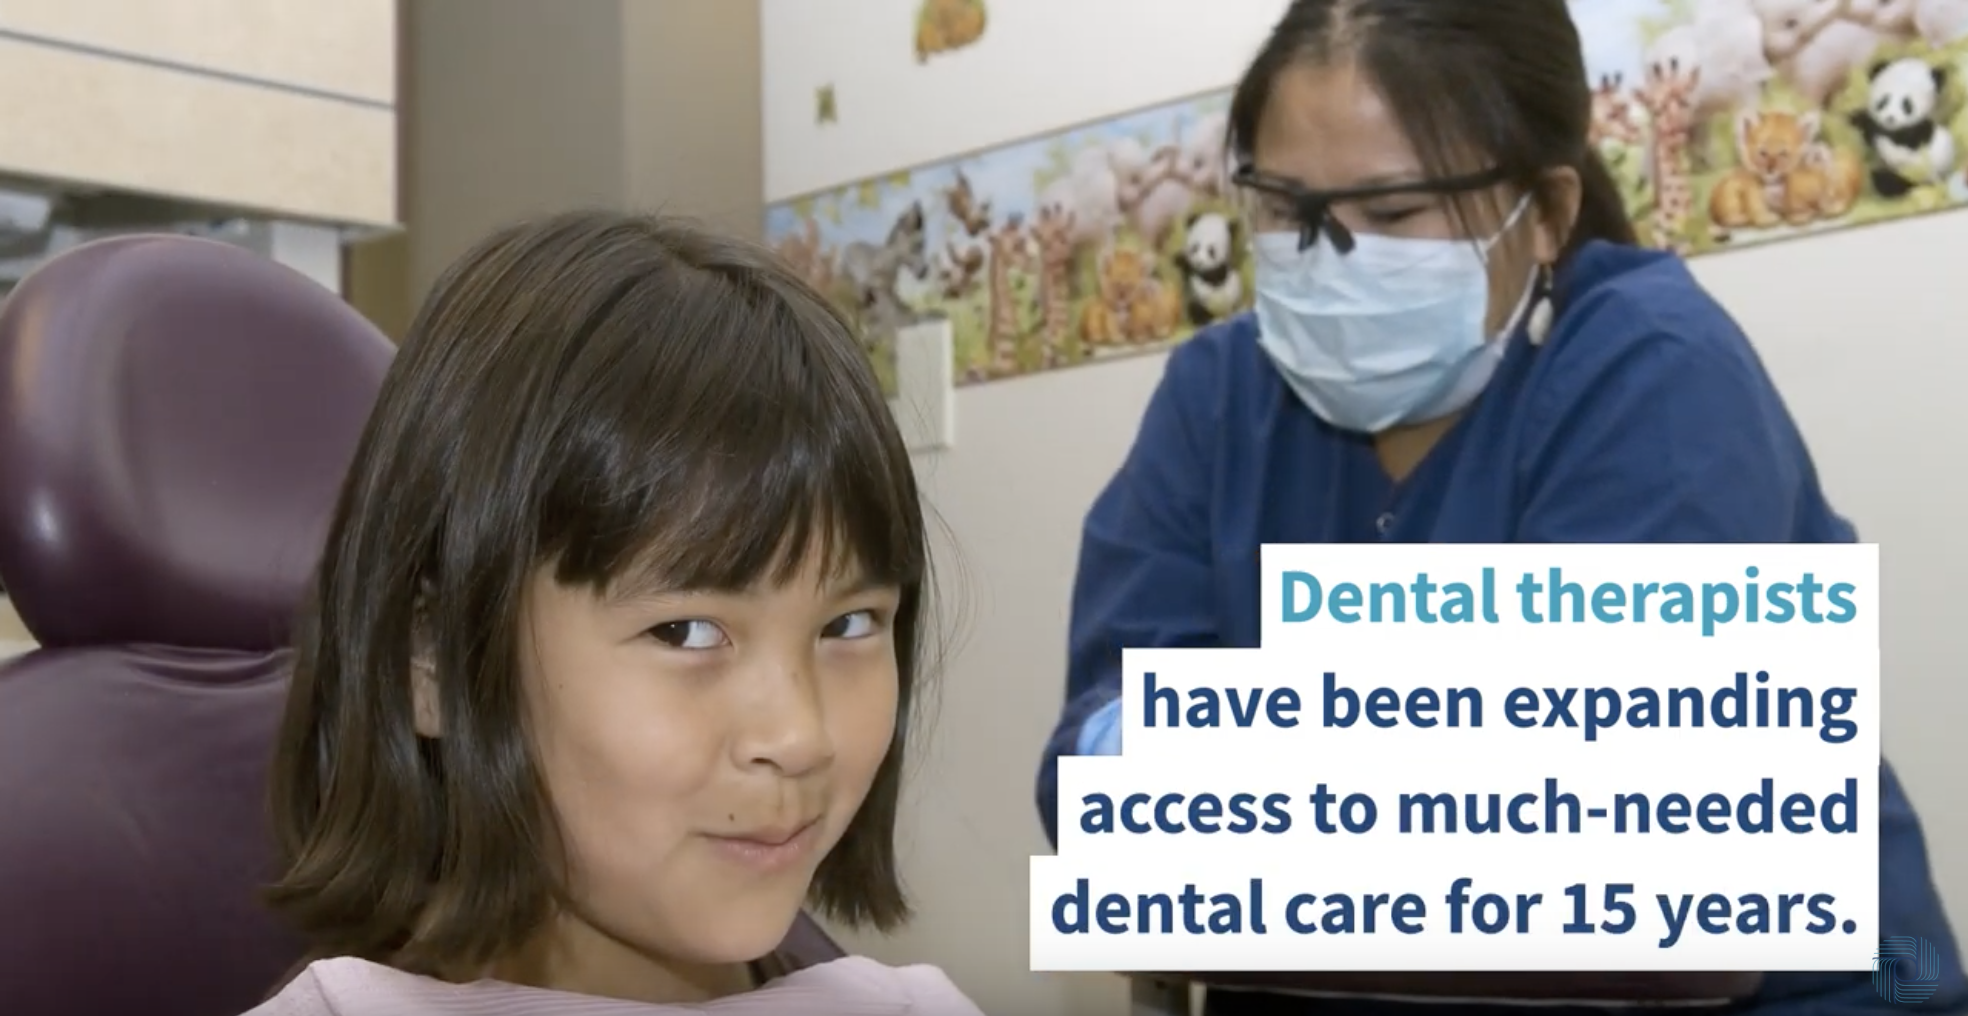 National Partnership for Dental Therapy | How Dental Therapists Improve Access to Dental Care